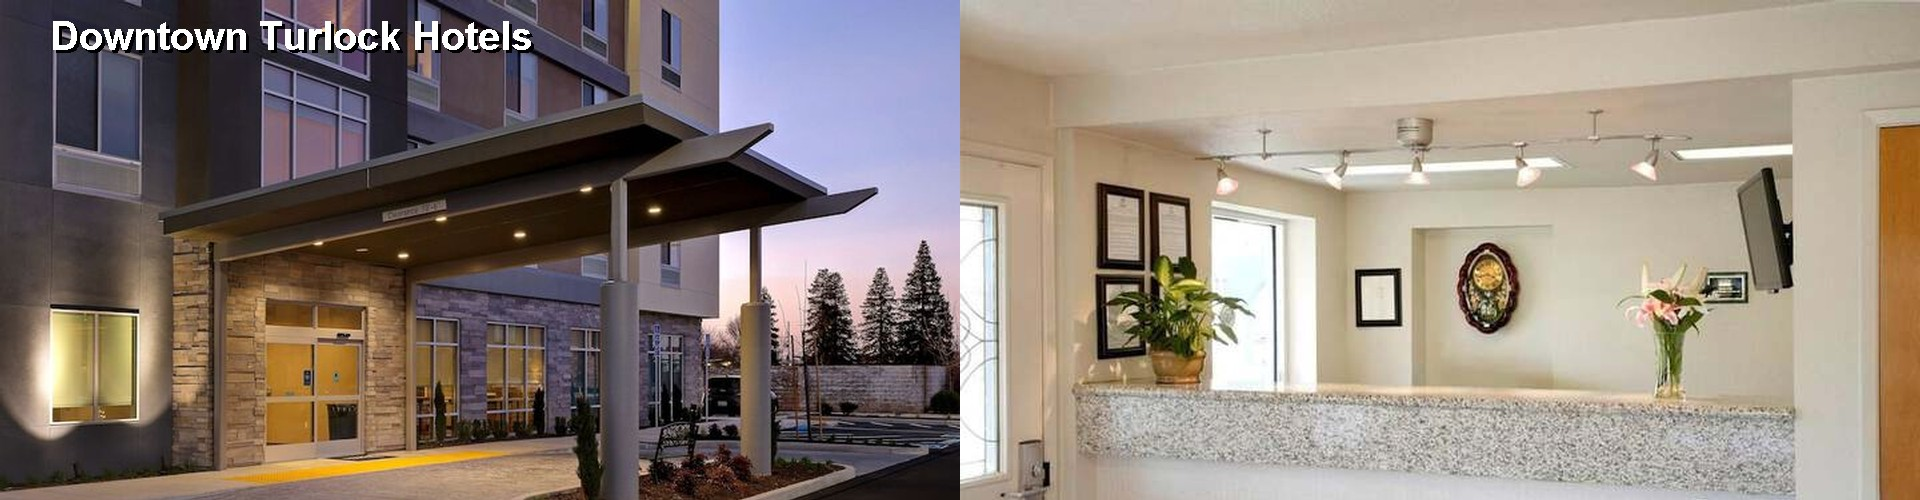 5 Best Hotels near Downtown Turlock